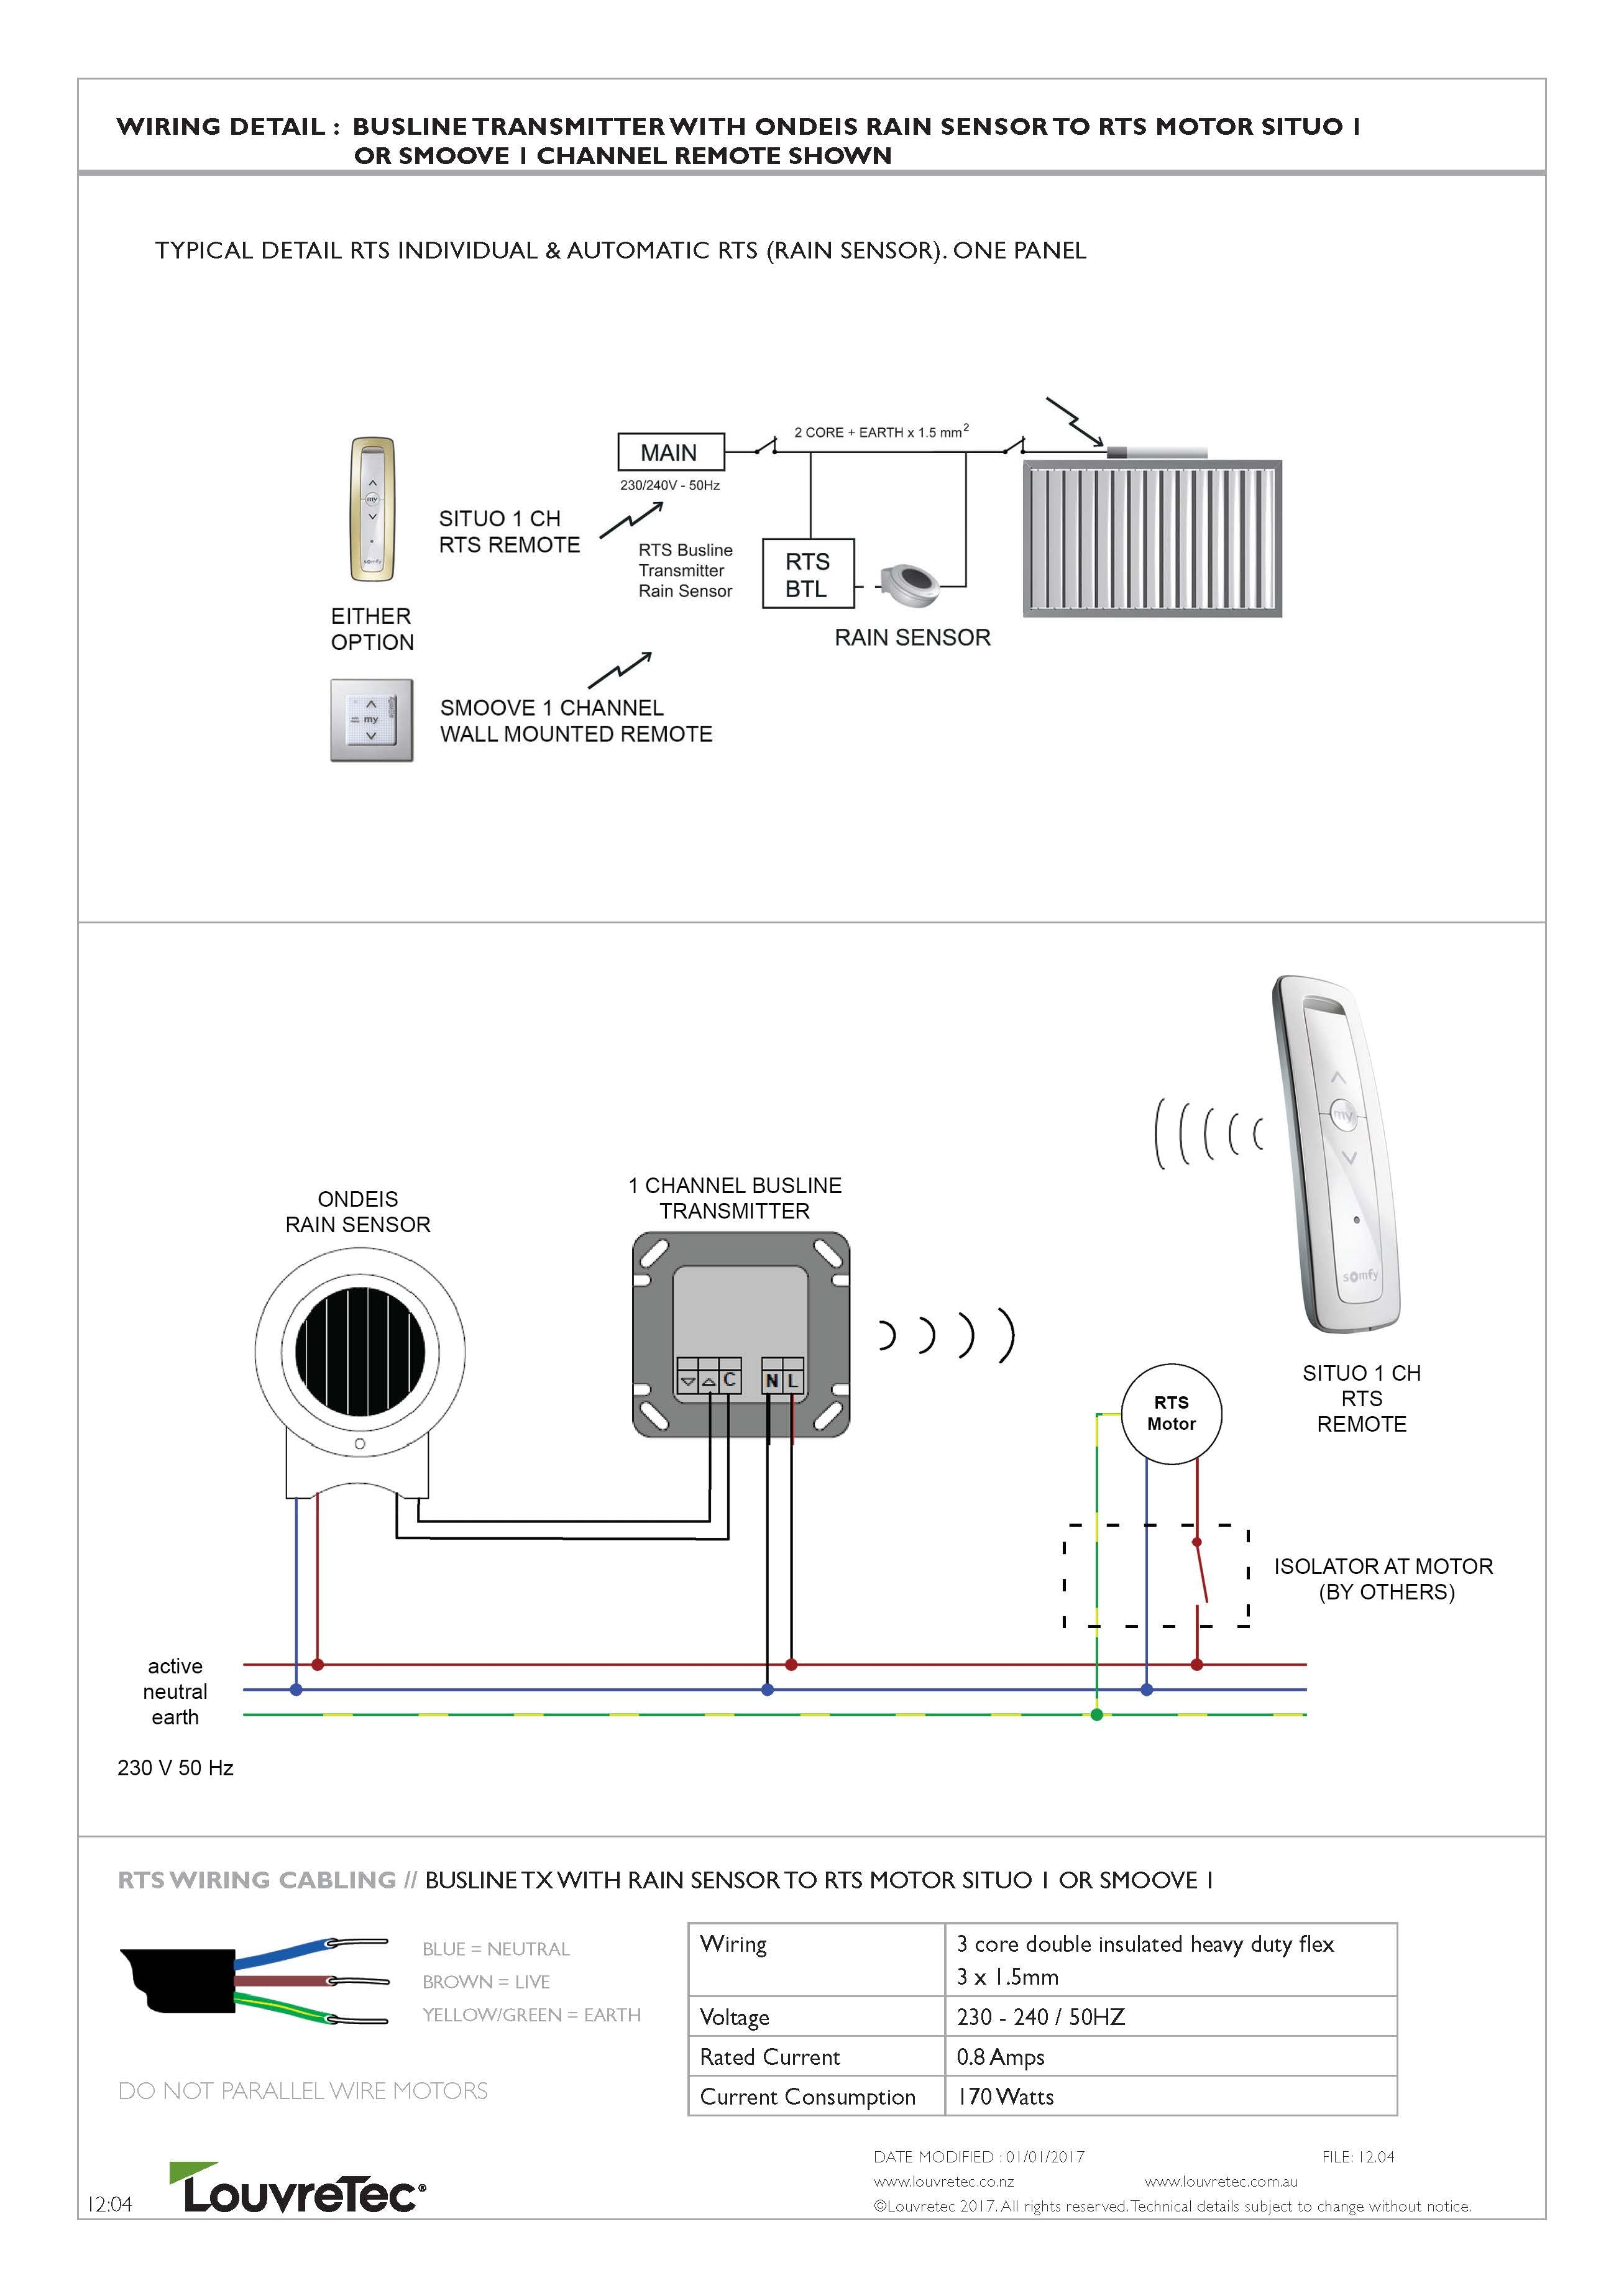 3 Core And Earth Wiring Diagram 31 Images Diagramselectrical Photosmovies Photo Albums Ring Circuit Technical Diagrams Louvretec 1204 F4be8a5c 6949 413b B332 3b70383d5df1v1502702005